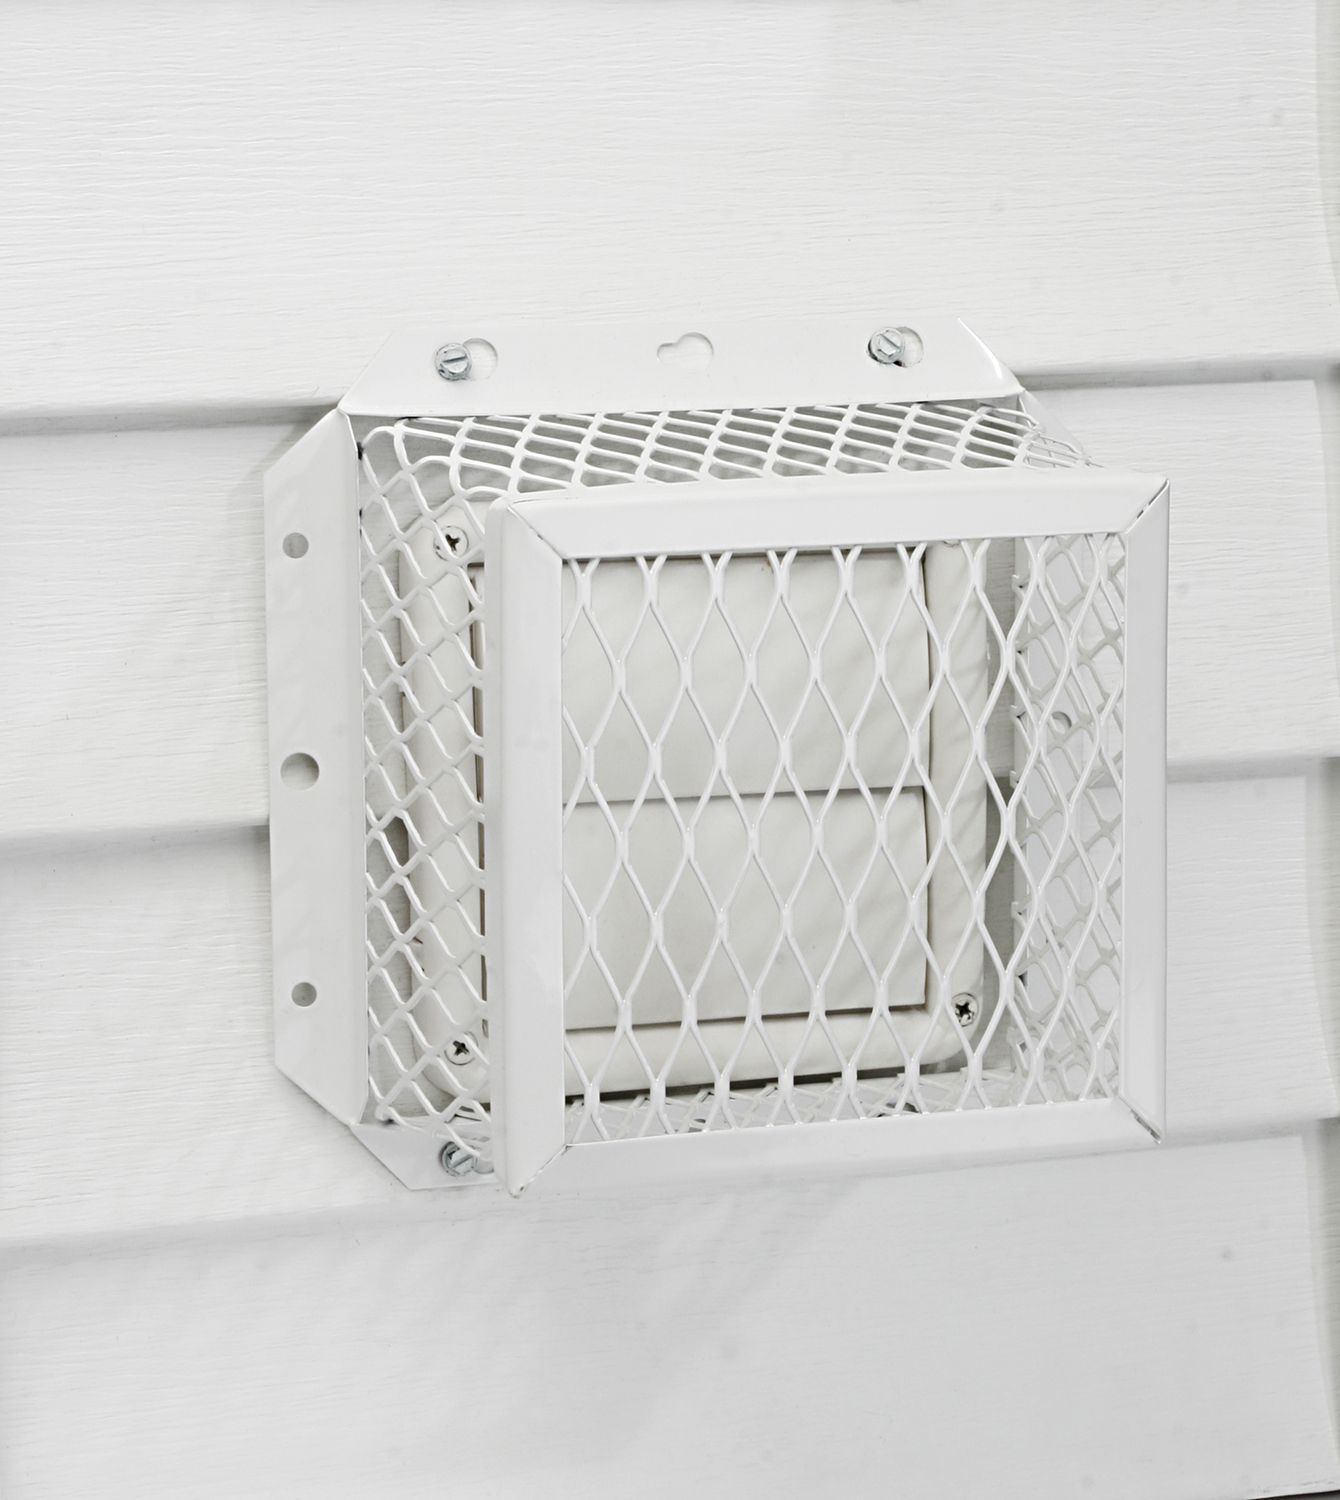 Dryer Vent with Wire Mesh Cover | Home Exterior, Garden ...